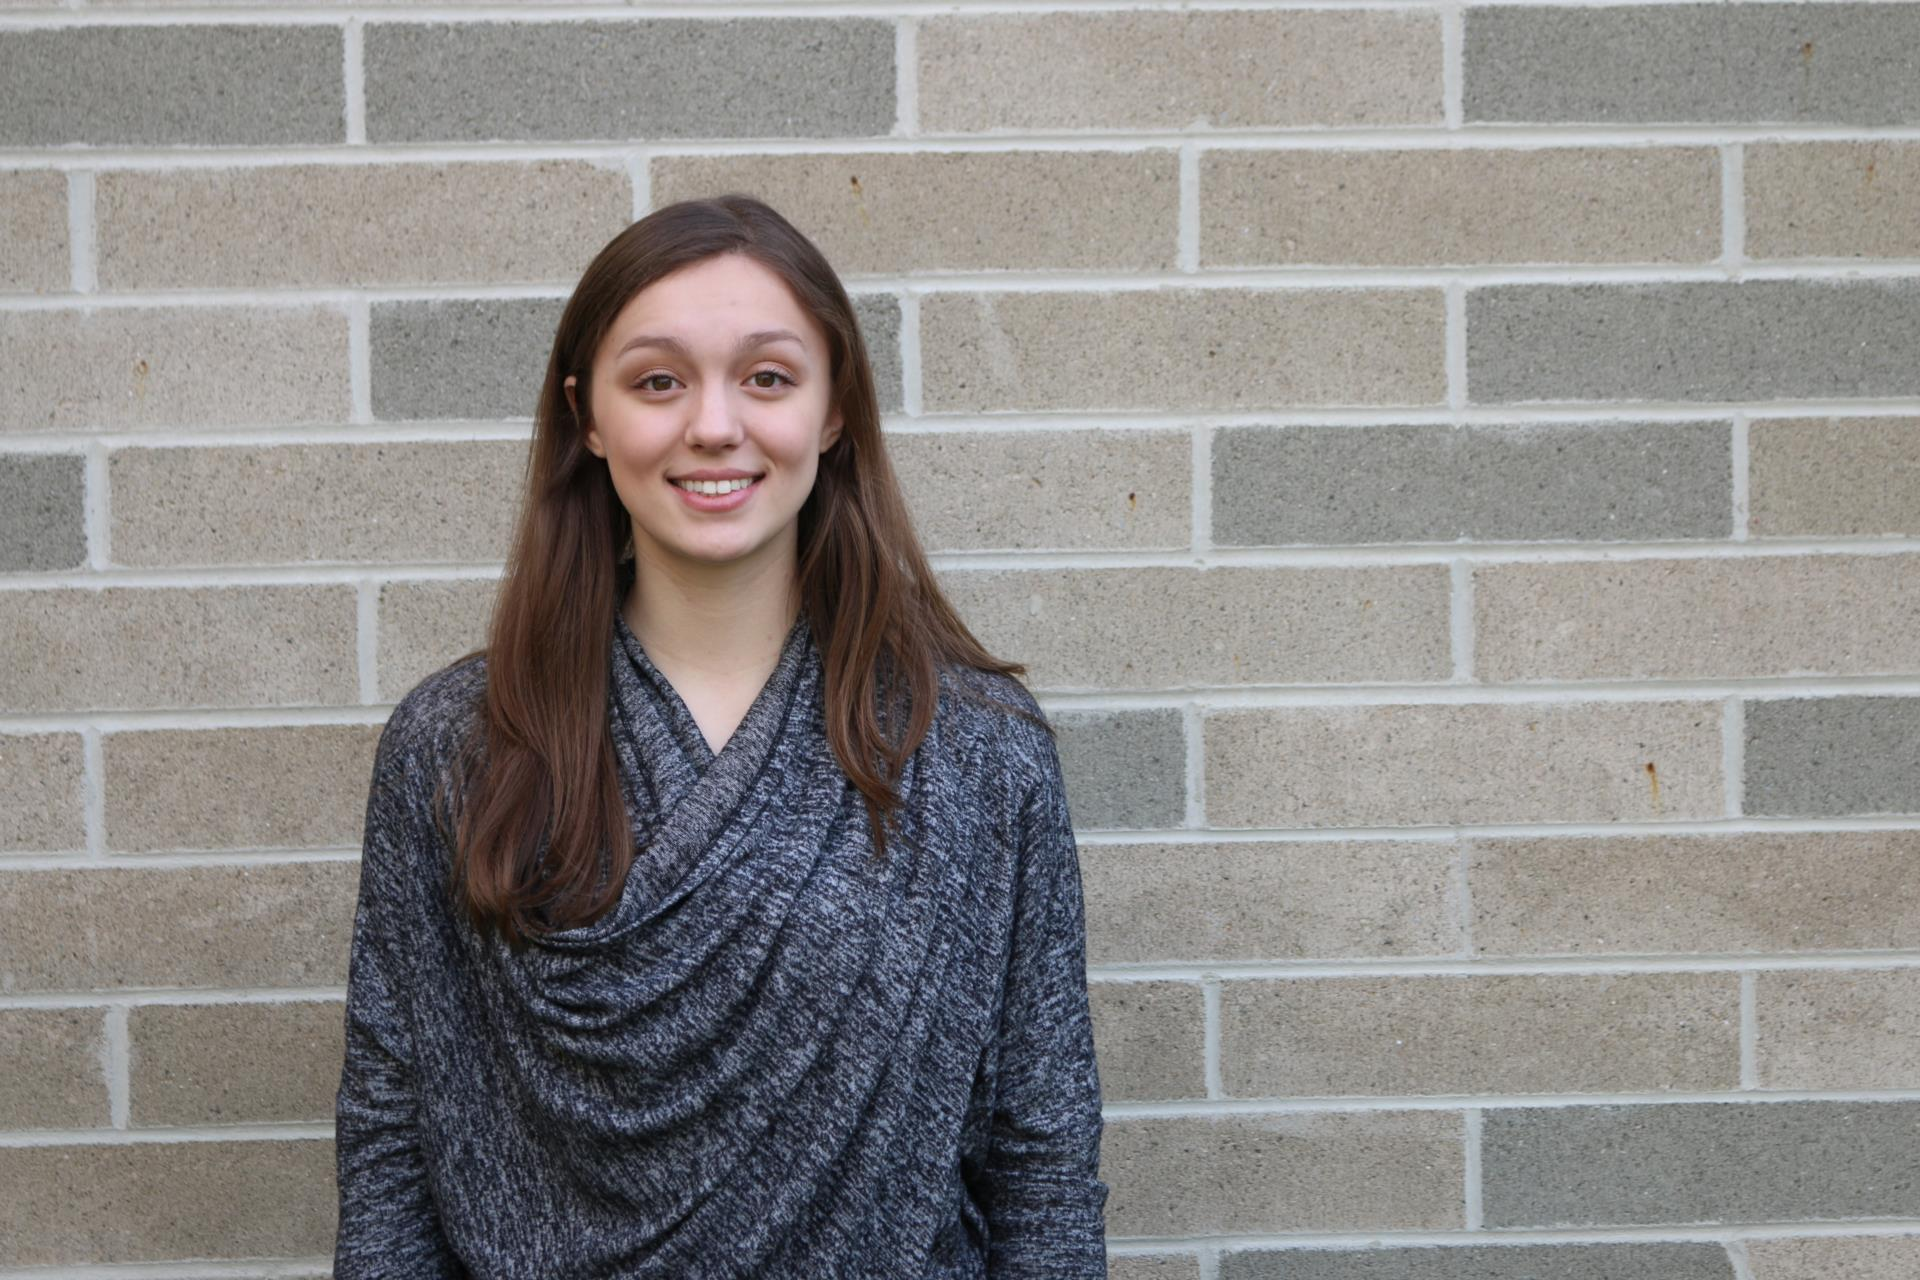 Senior Shannon Benner has been named the building winner of the Good Citizen essay contest on behalf of the Pickaway Plains Chapter of the Daughters of American Revolution (D.A.R.).